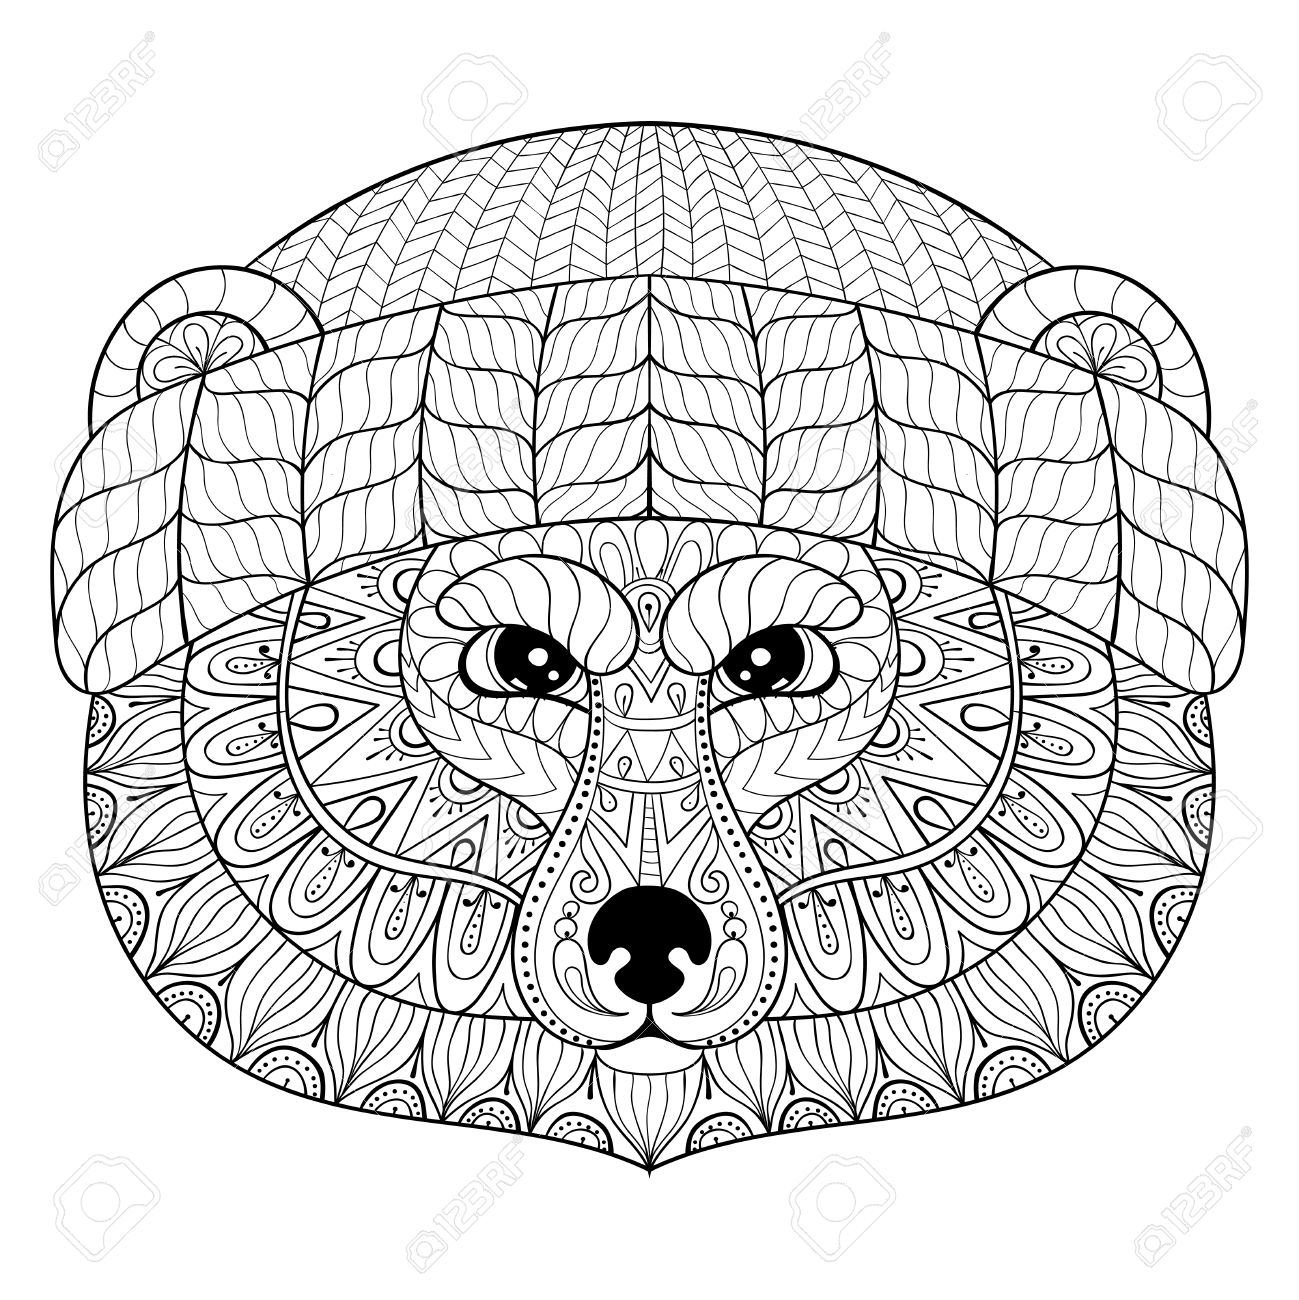 1299x1300 Bear Face In Doodle Style. Wild Animal Face Illustration